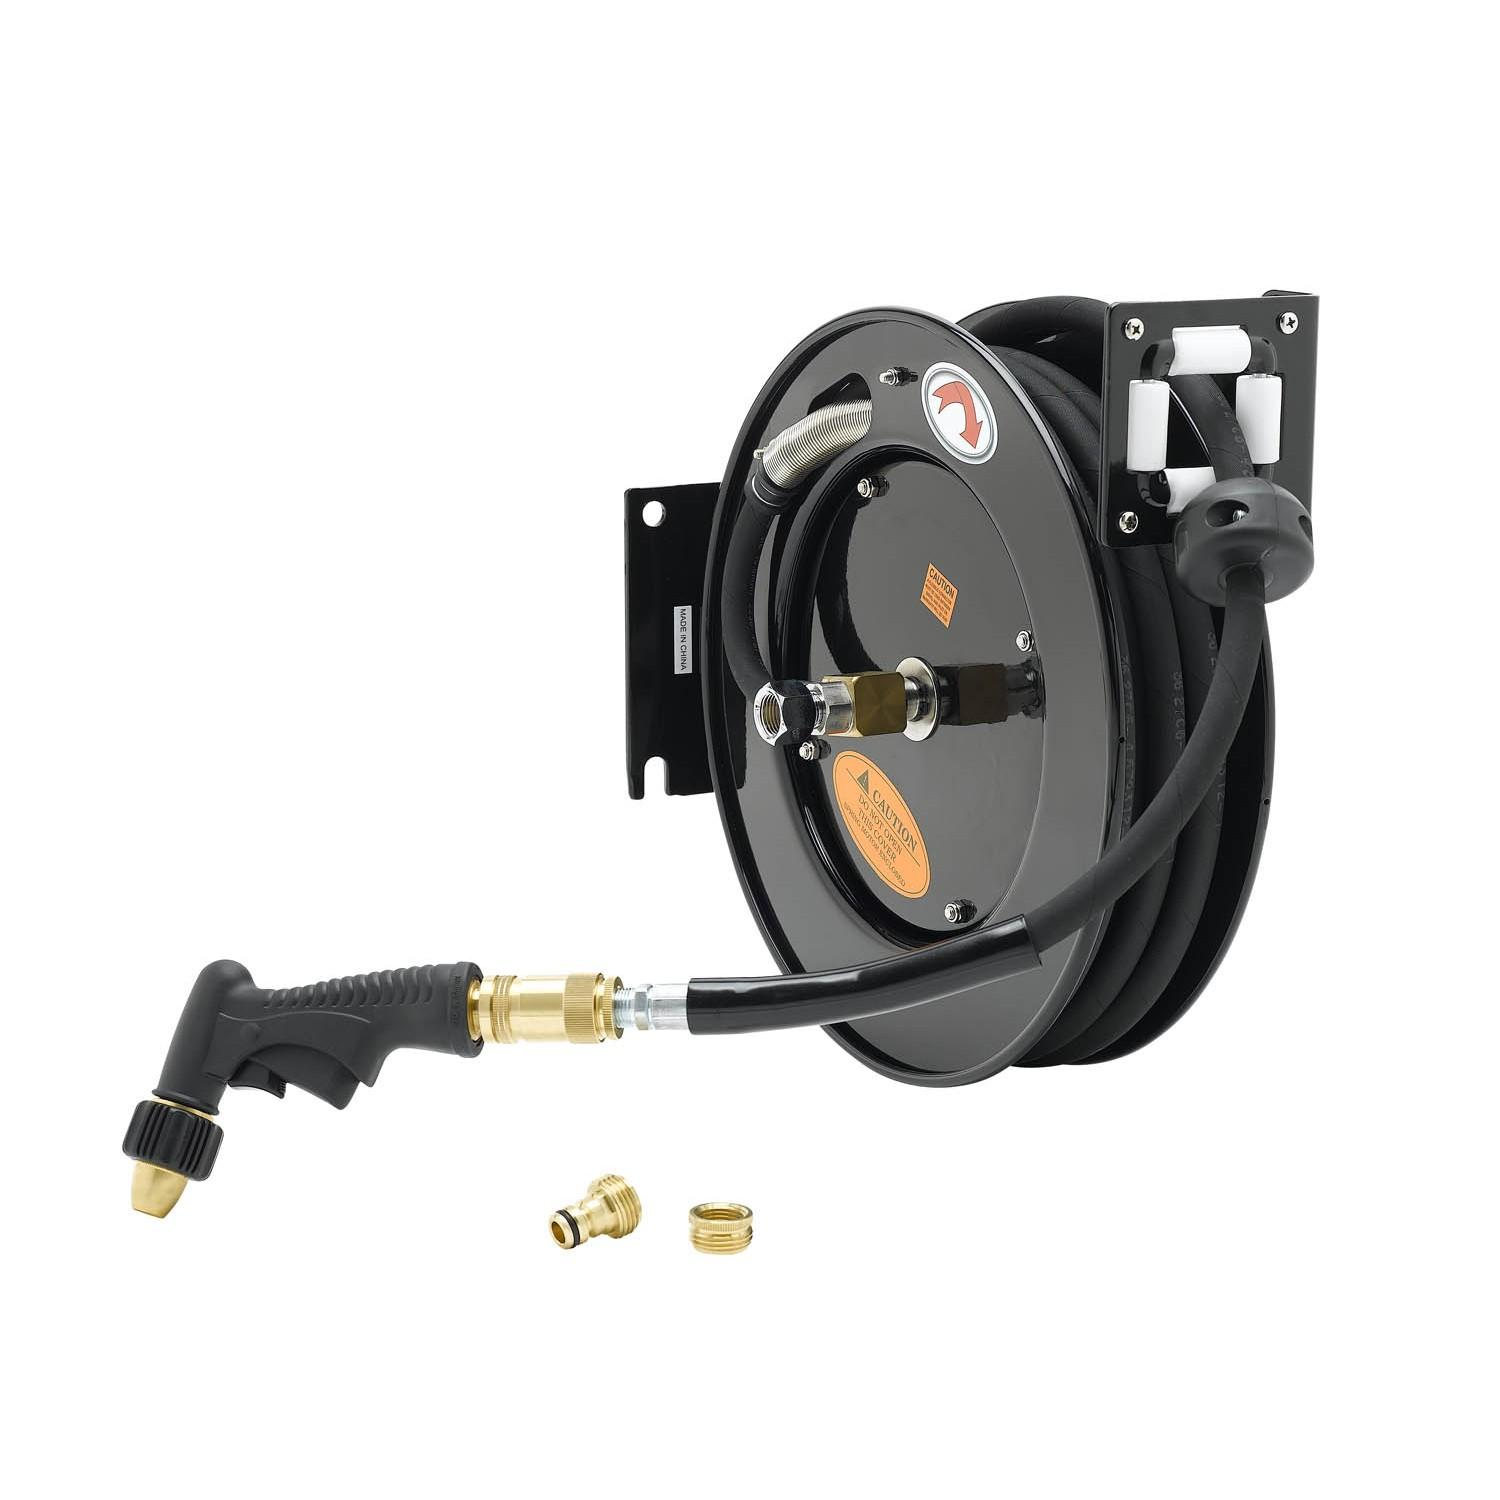 "T&S BRASS HOSE REEL, OPEN, POWDER COATED STEEL, 35^ OF 3/8"" DIA. HOSE W/ WATER GUN, REDUCING ADAPTER"